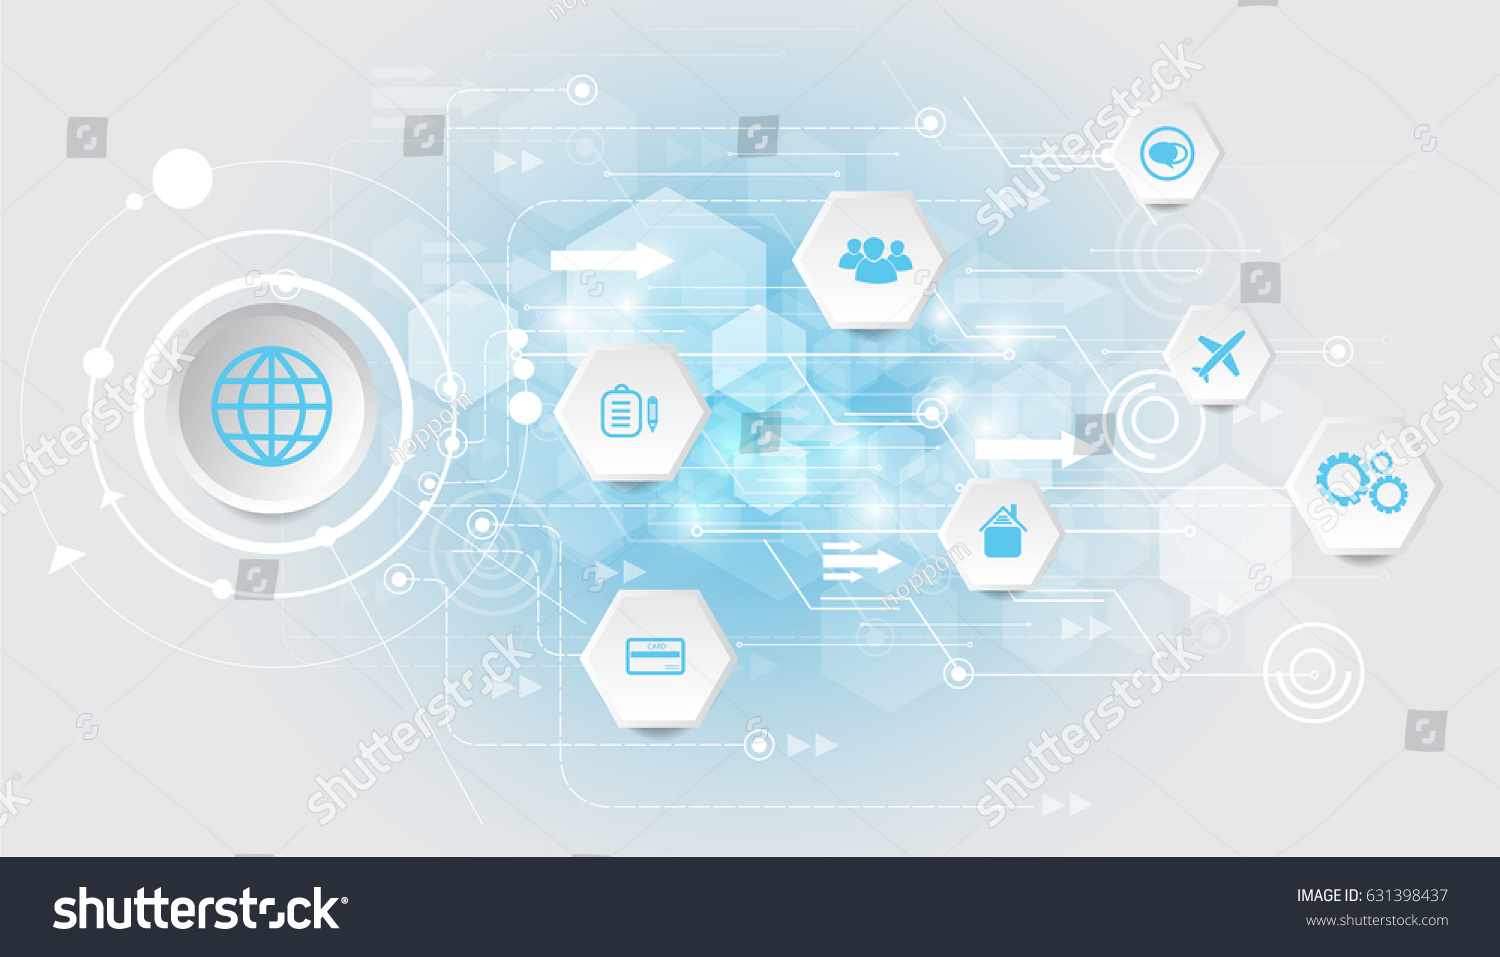 Abstract Technology Circuit Diagram Vector Background Stock With Business Icons